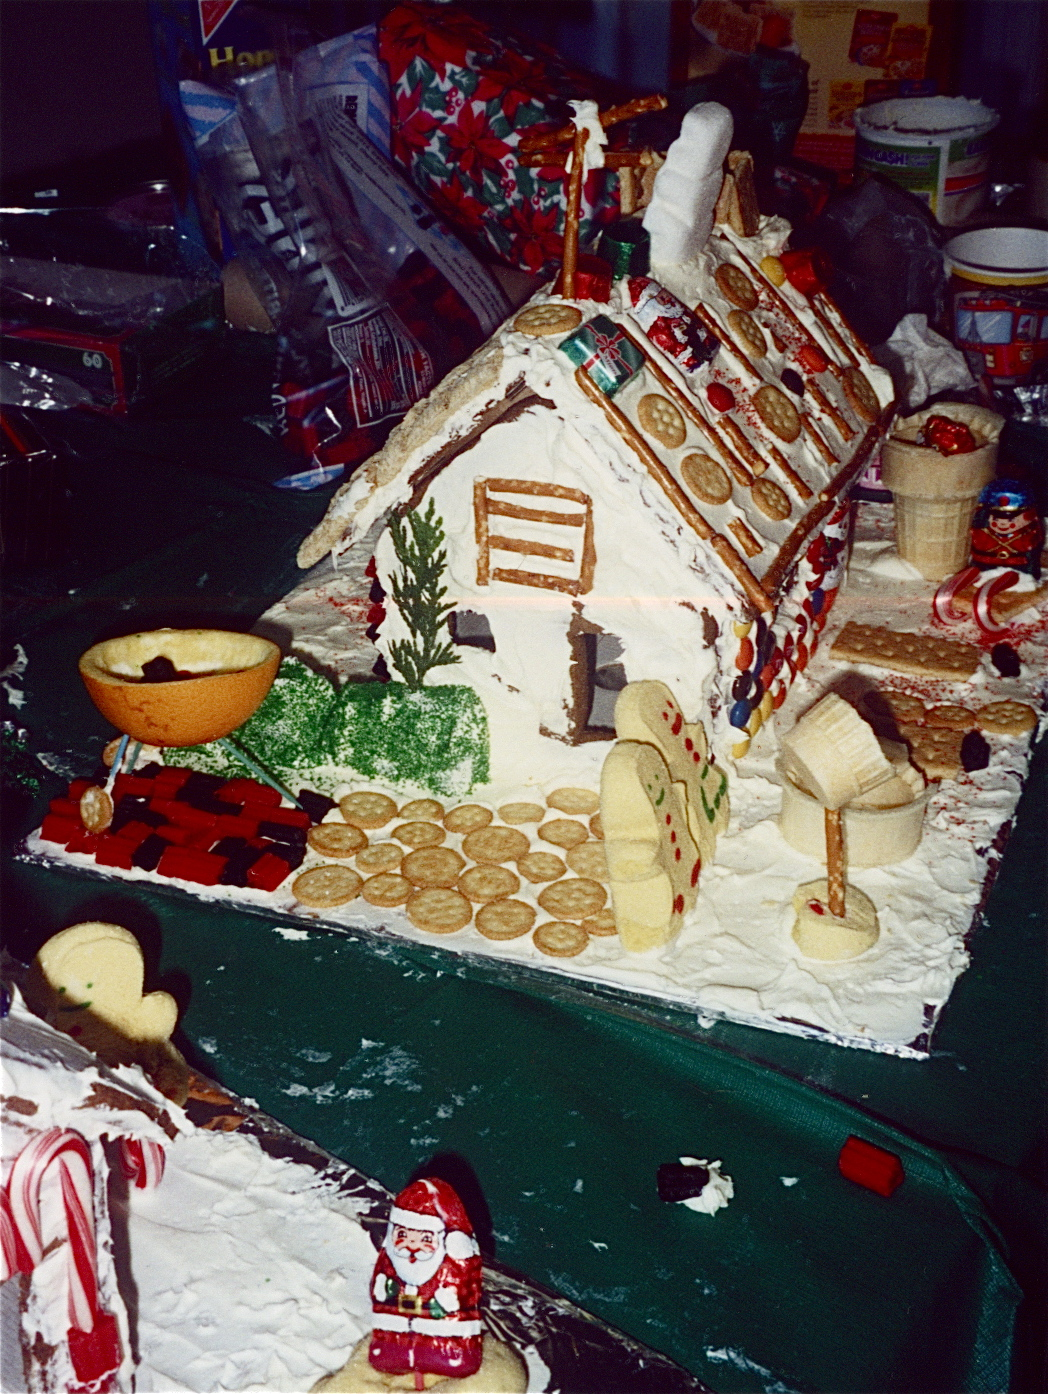 Build your dream gingerbread house part one slow family for Build dream home online for fun